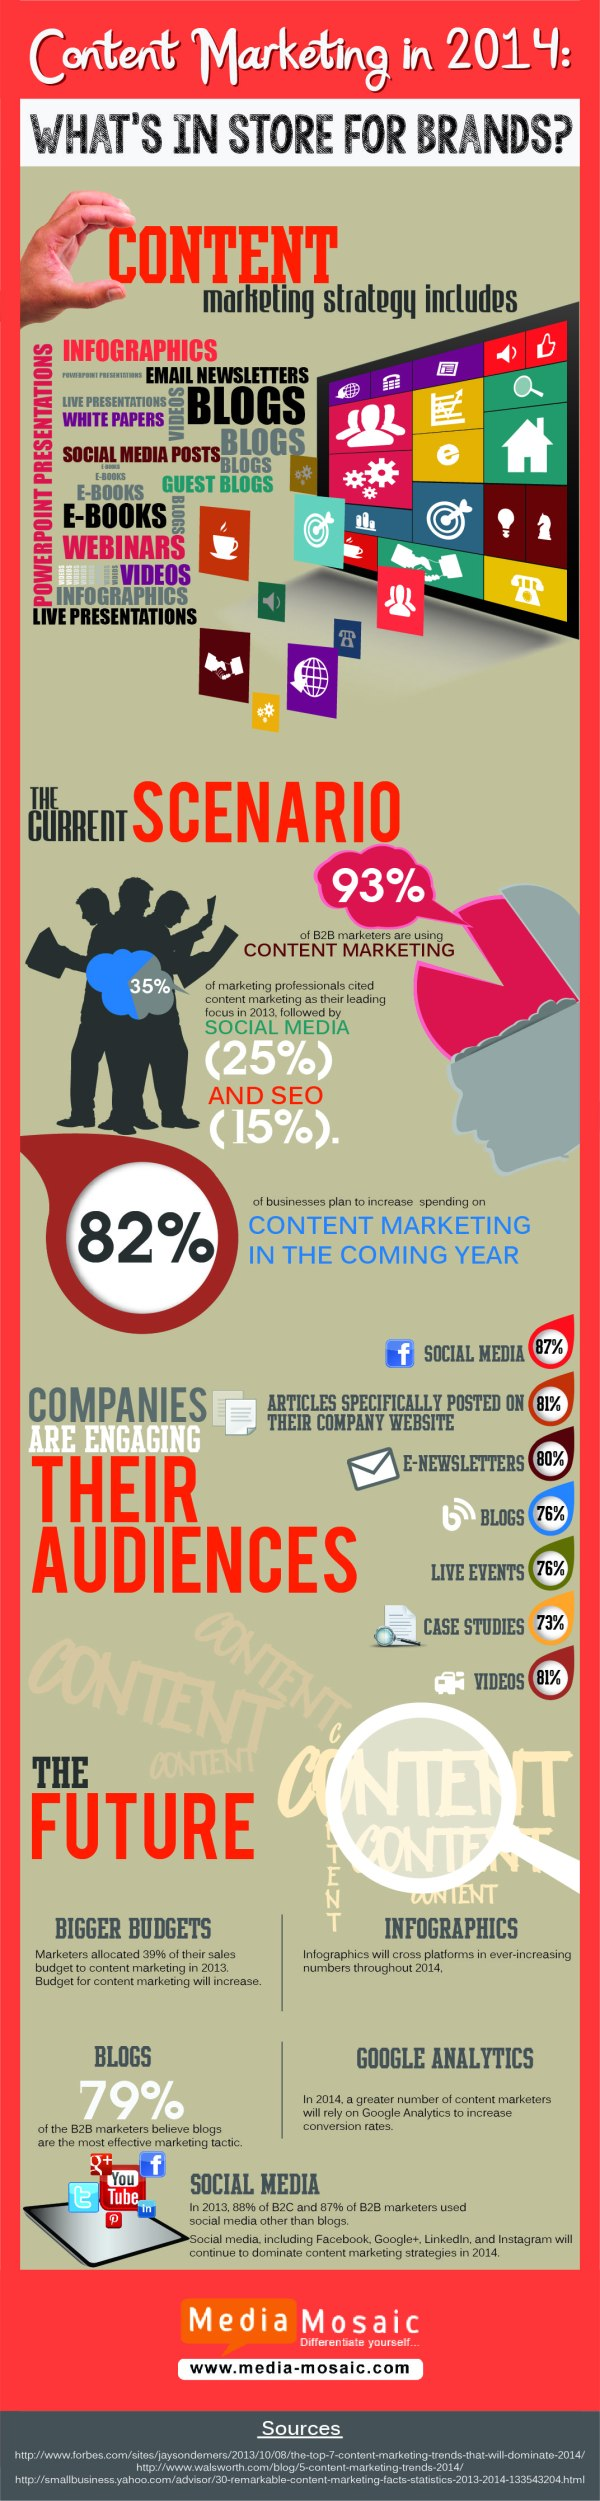 Content Marketing Forecast 2014 Infographic